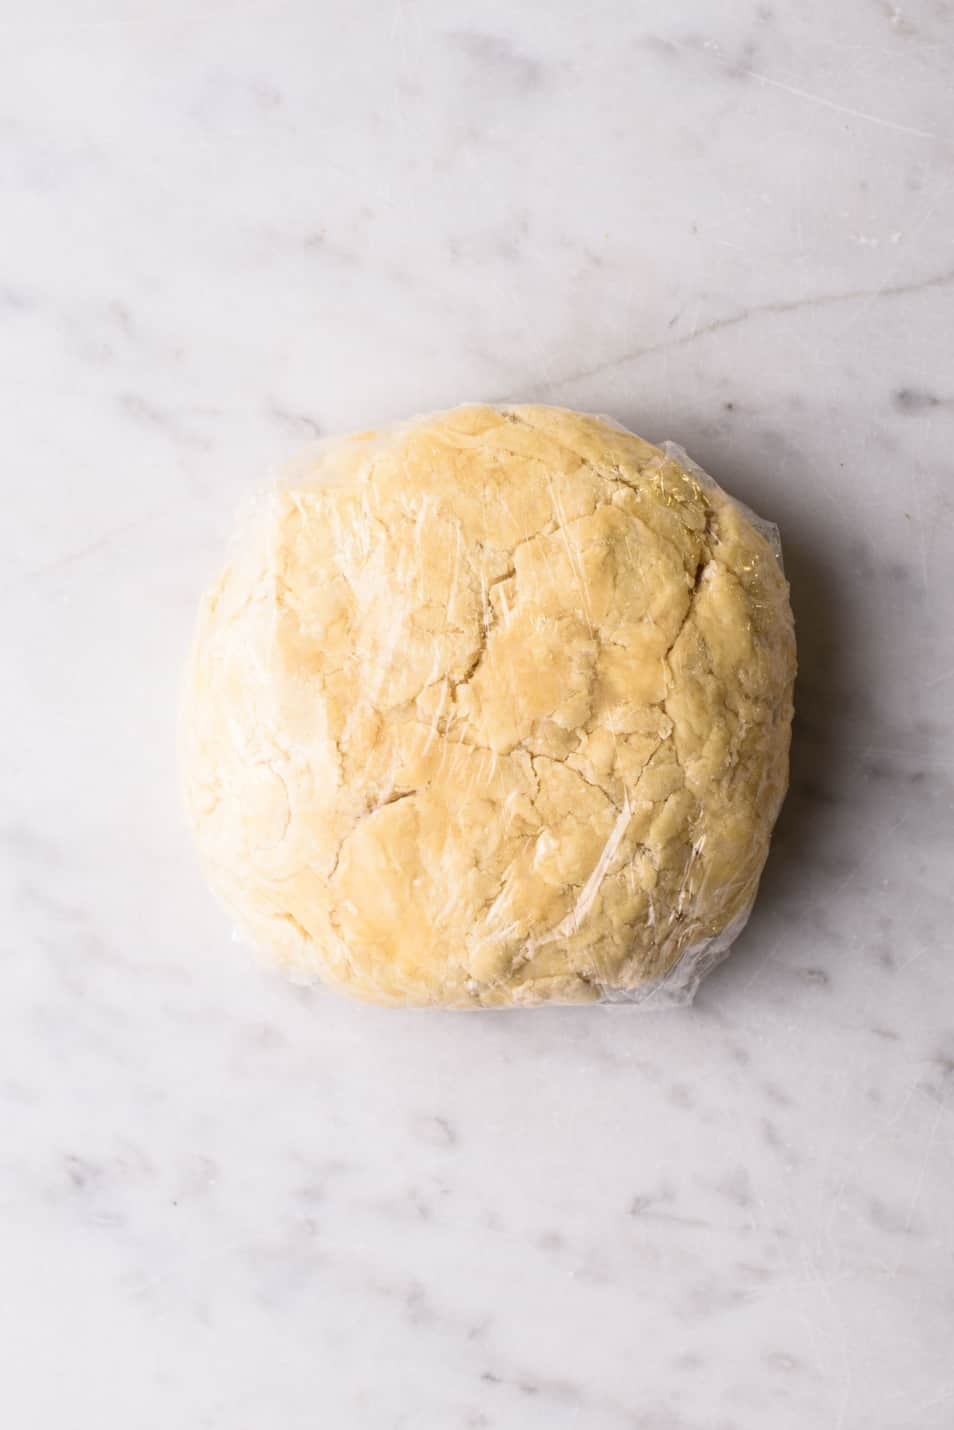 Vegan pie crust dough, shaped into a disc and wrapped in plastic, on a marble counter